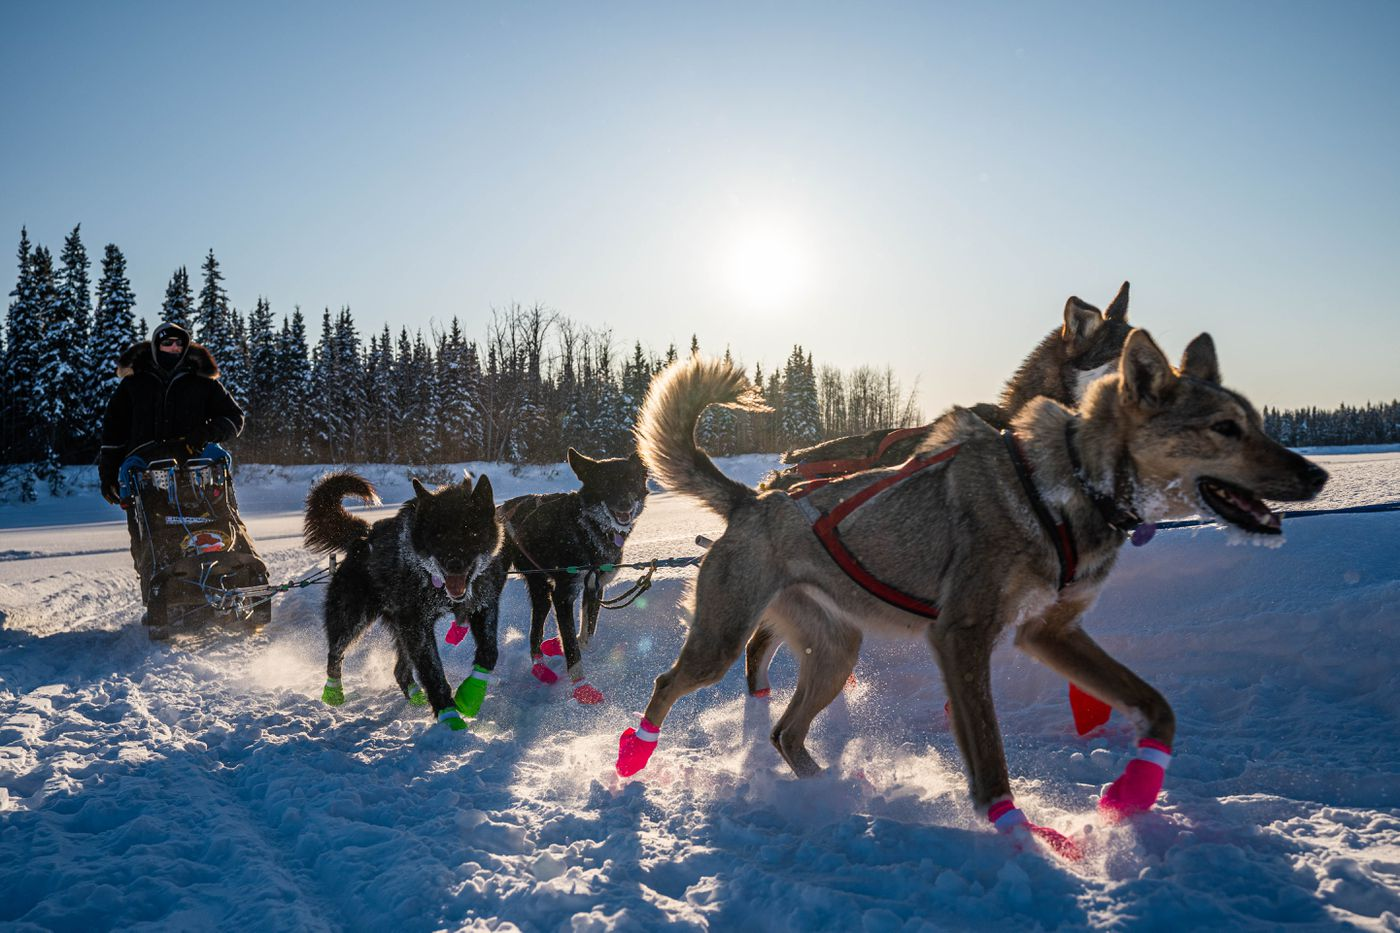 Jeff Deeter arrives in Nikolai on Tuesday, March 10, 2020 during the Iditarod Trail Sled Dog Race. (Loren Holmes / ADN)